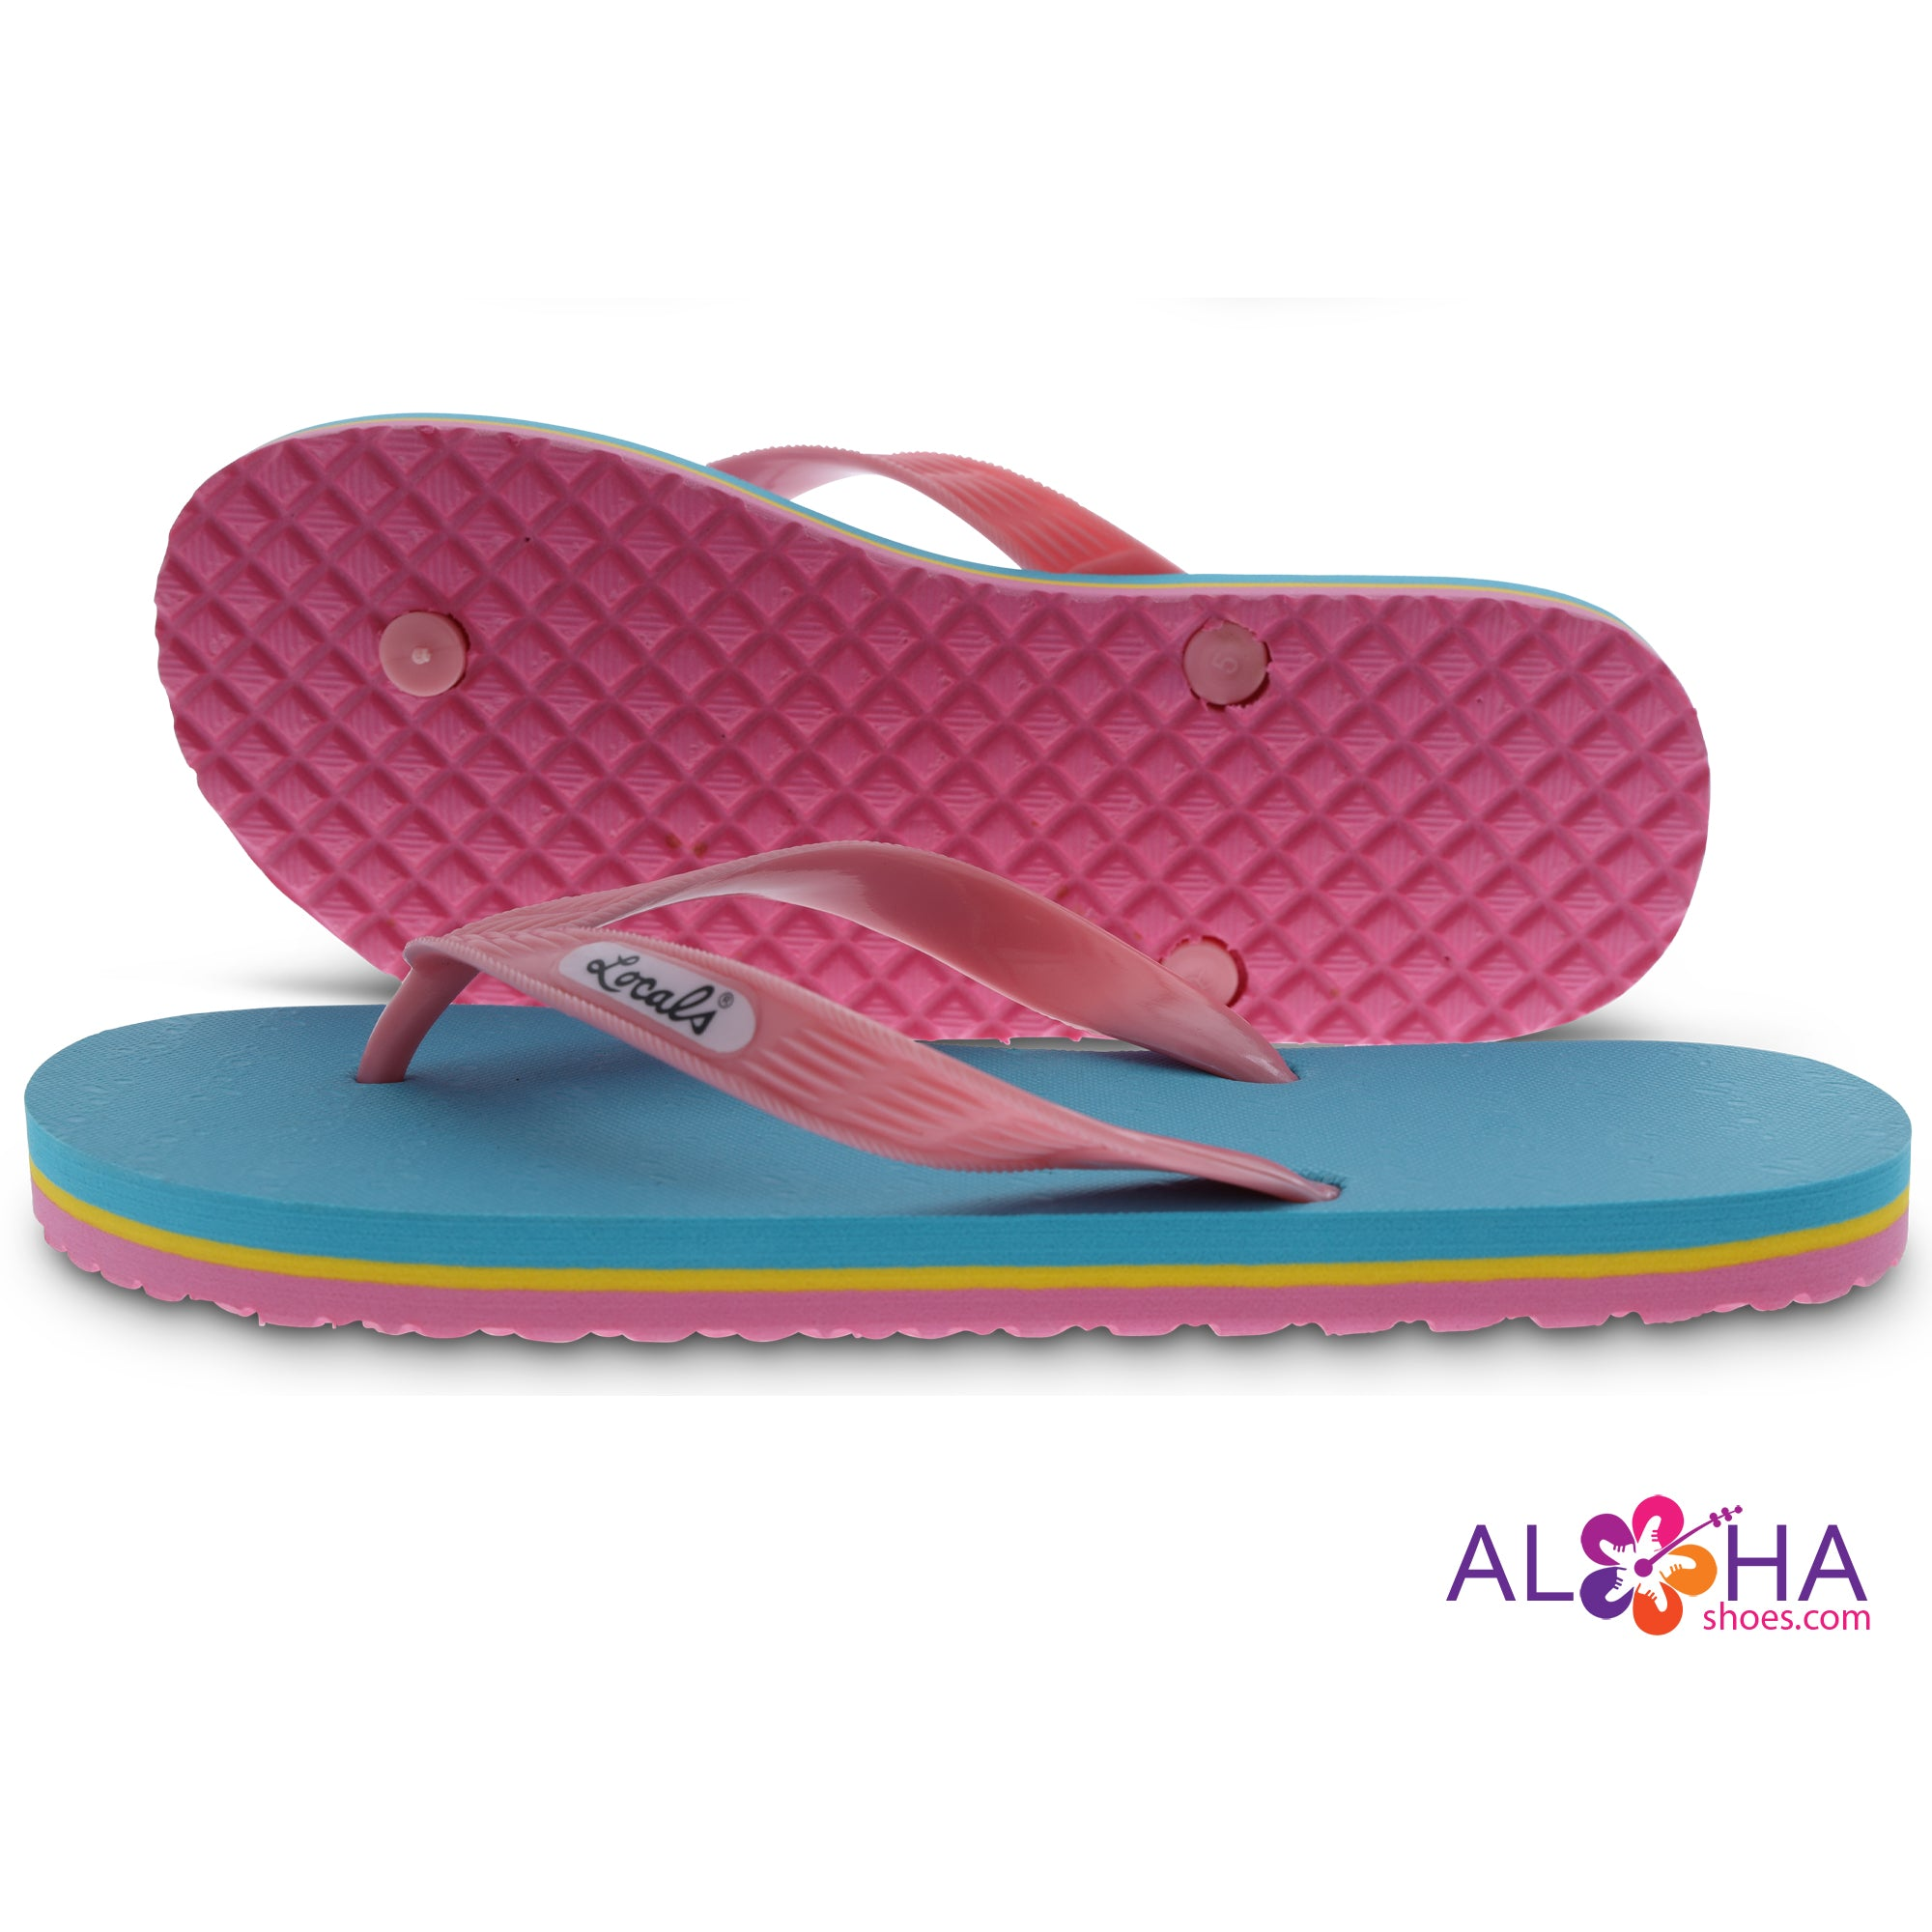 Locals Hawaii Women's Neon Slippers